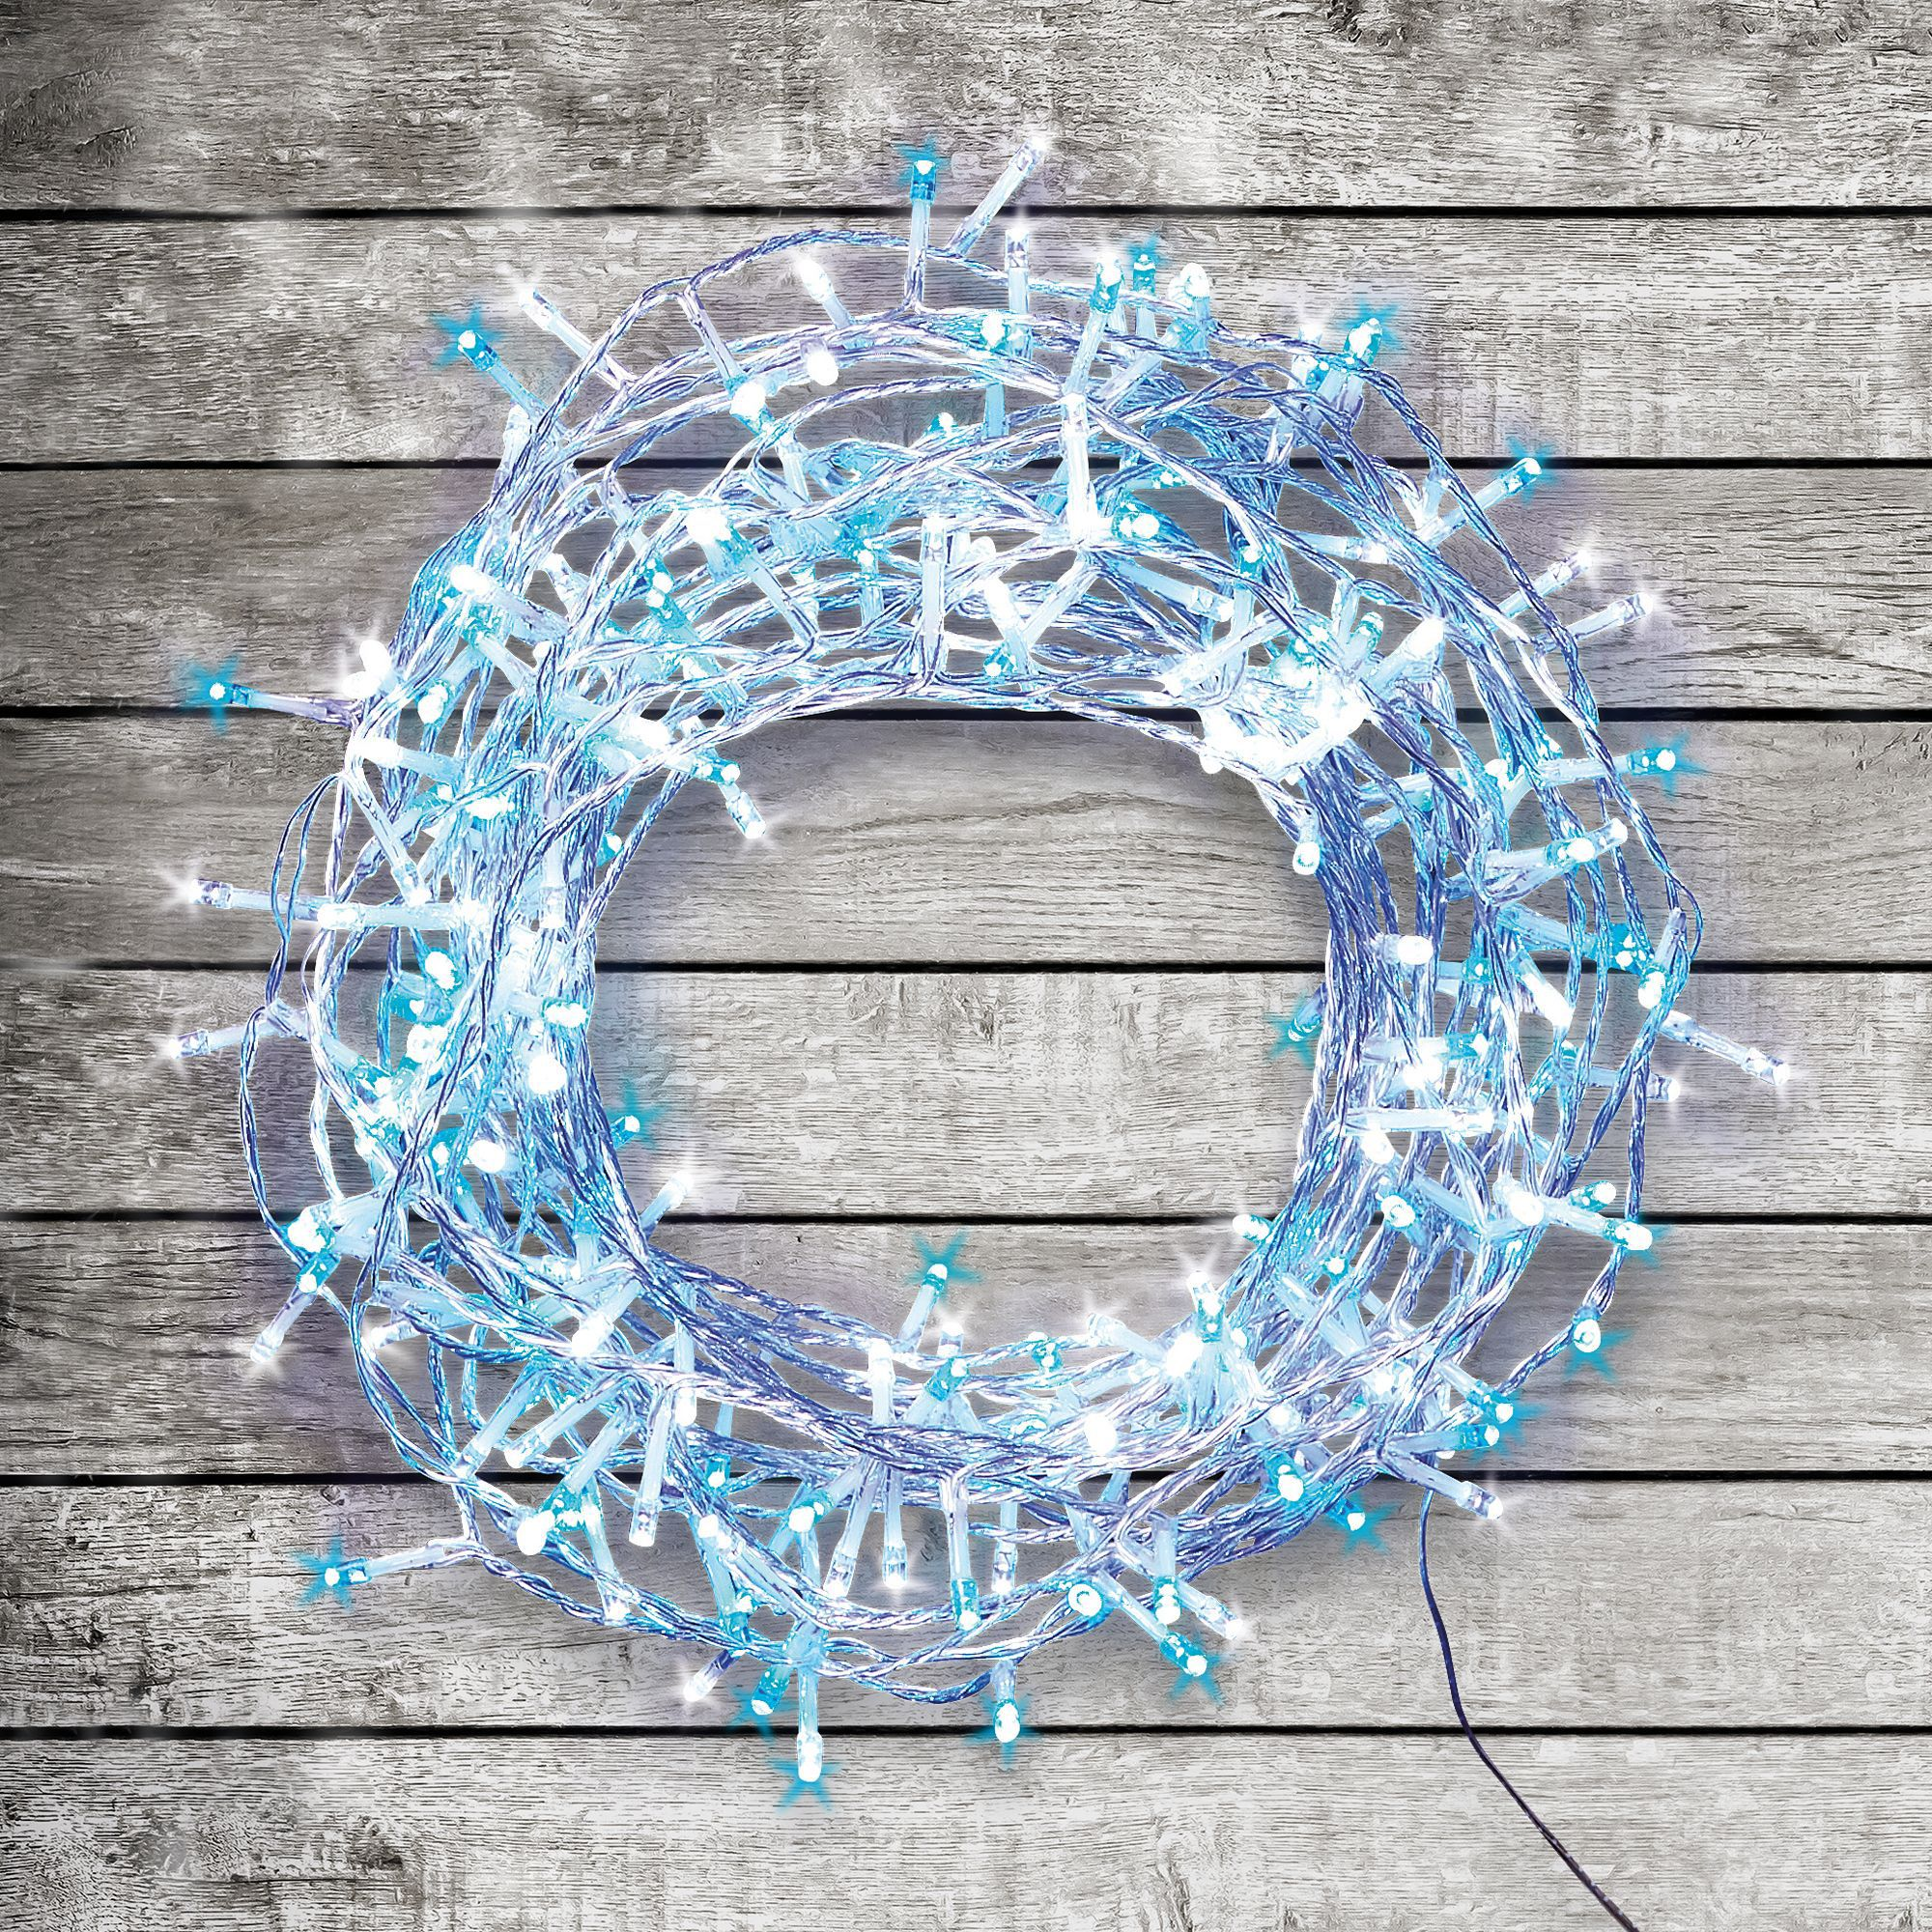 240 Blue & Ice White LED String Lights Departments DIY at B&Q